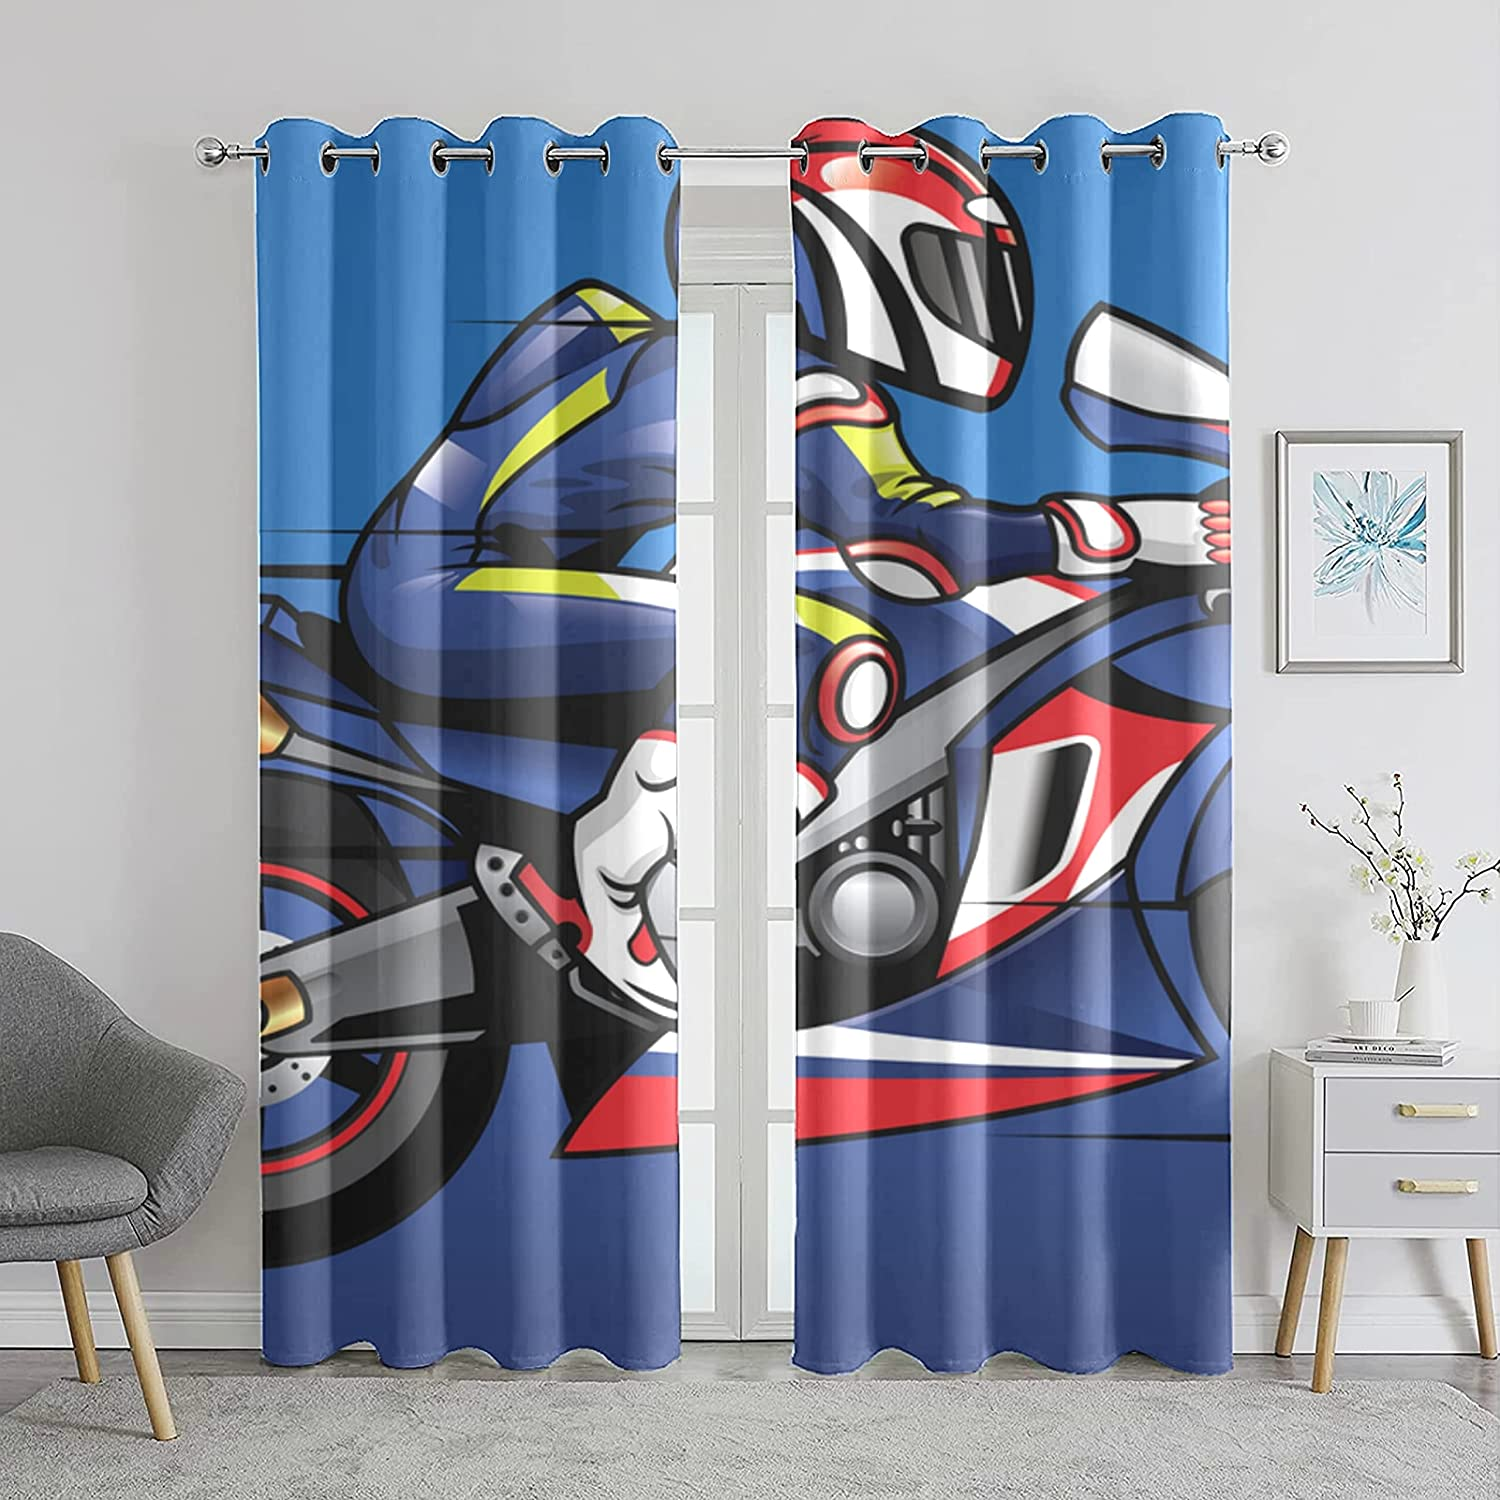 Bedroom Blackout Curtains Animation Free shipping on posting reviews Riding Roo Spring new work Living Motorcycle